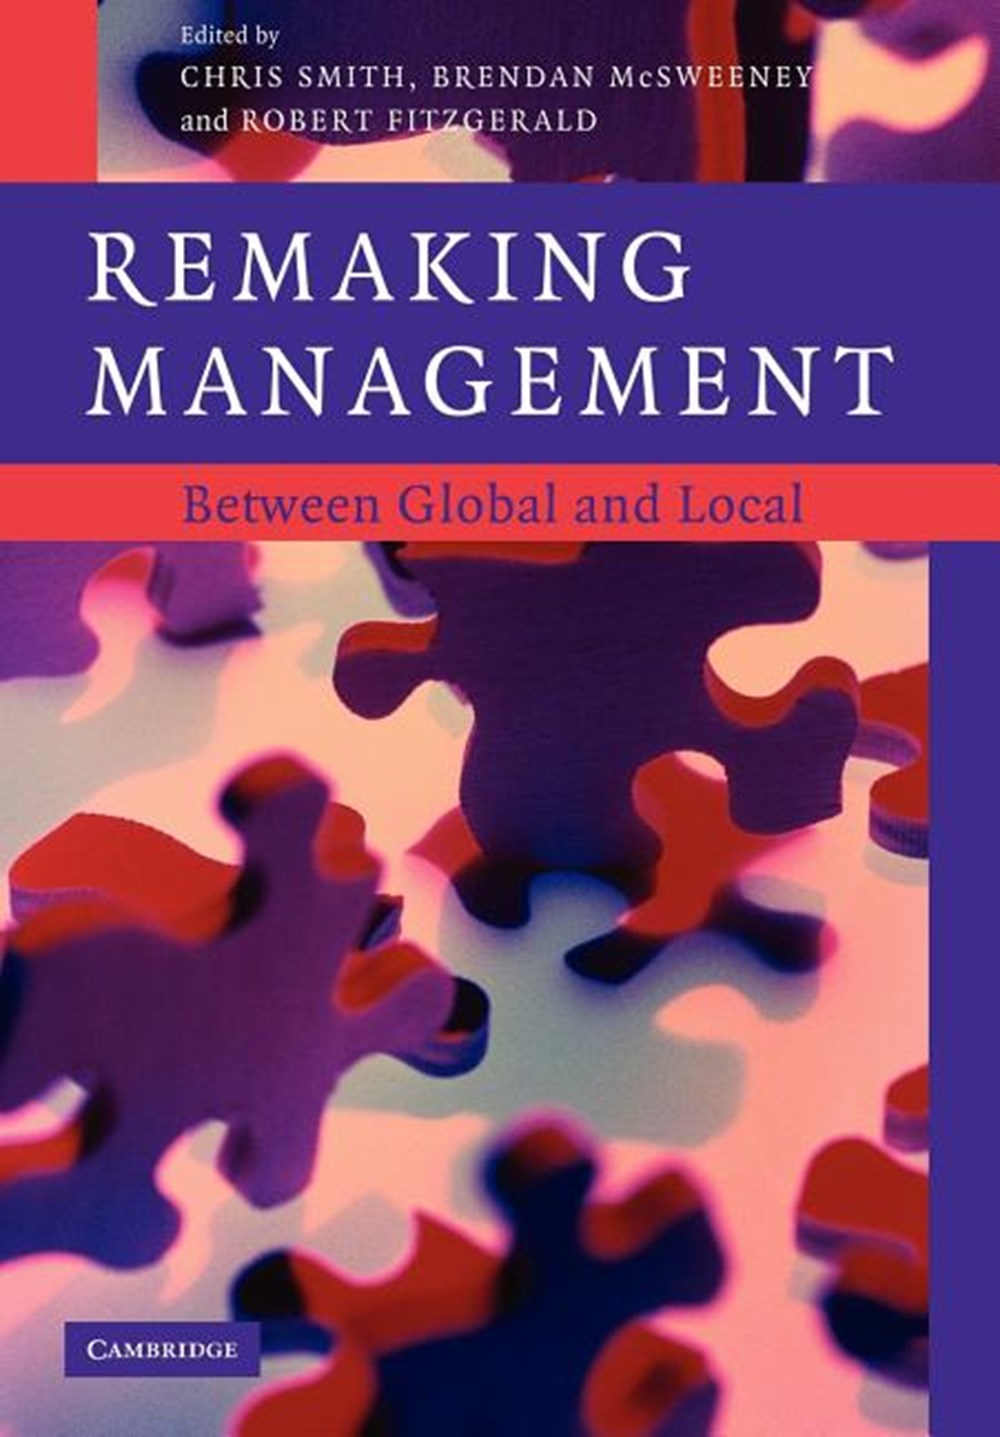 Remaking Management Between Global and Local